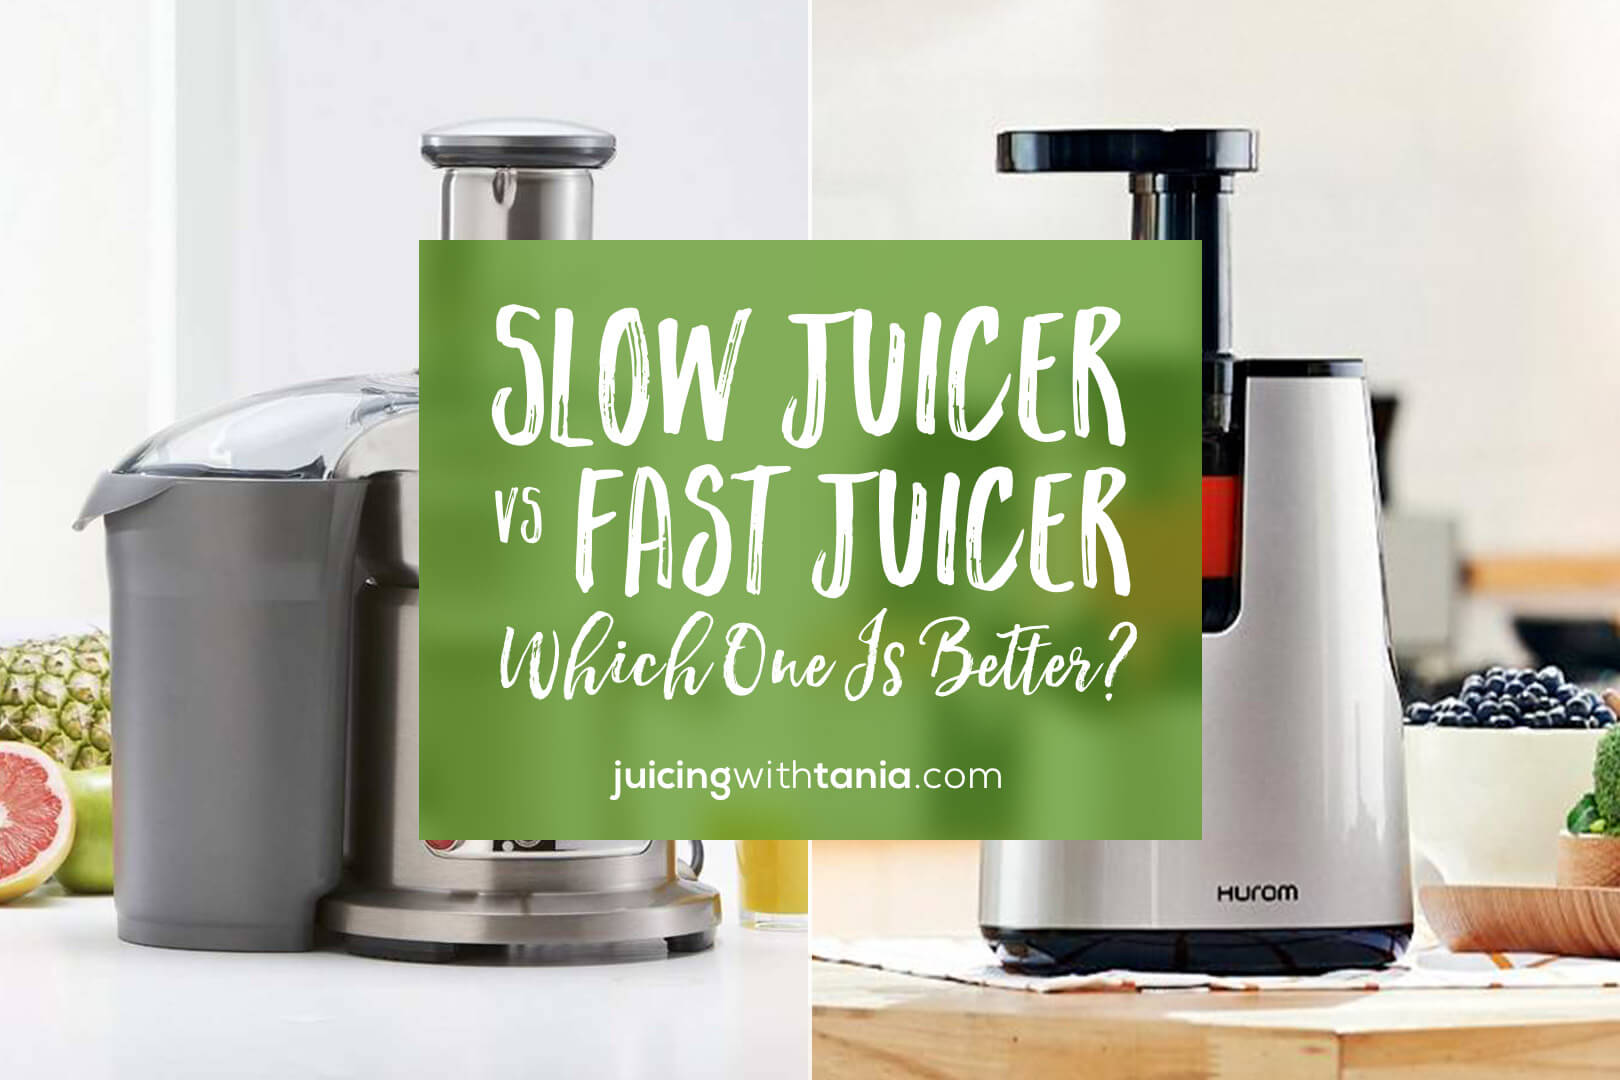 slow juicers vs fast juicers